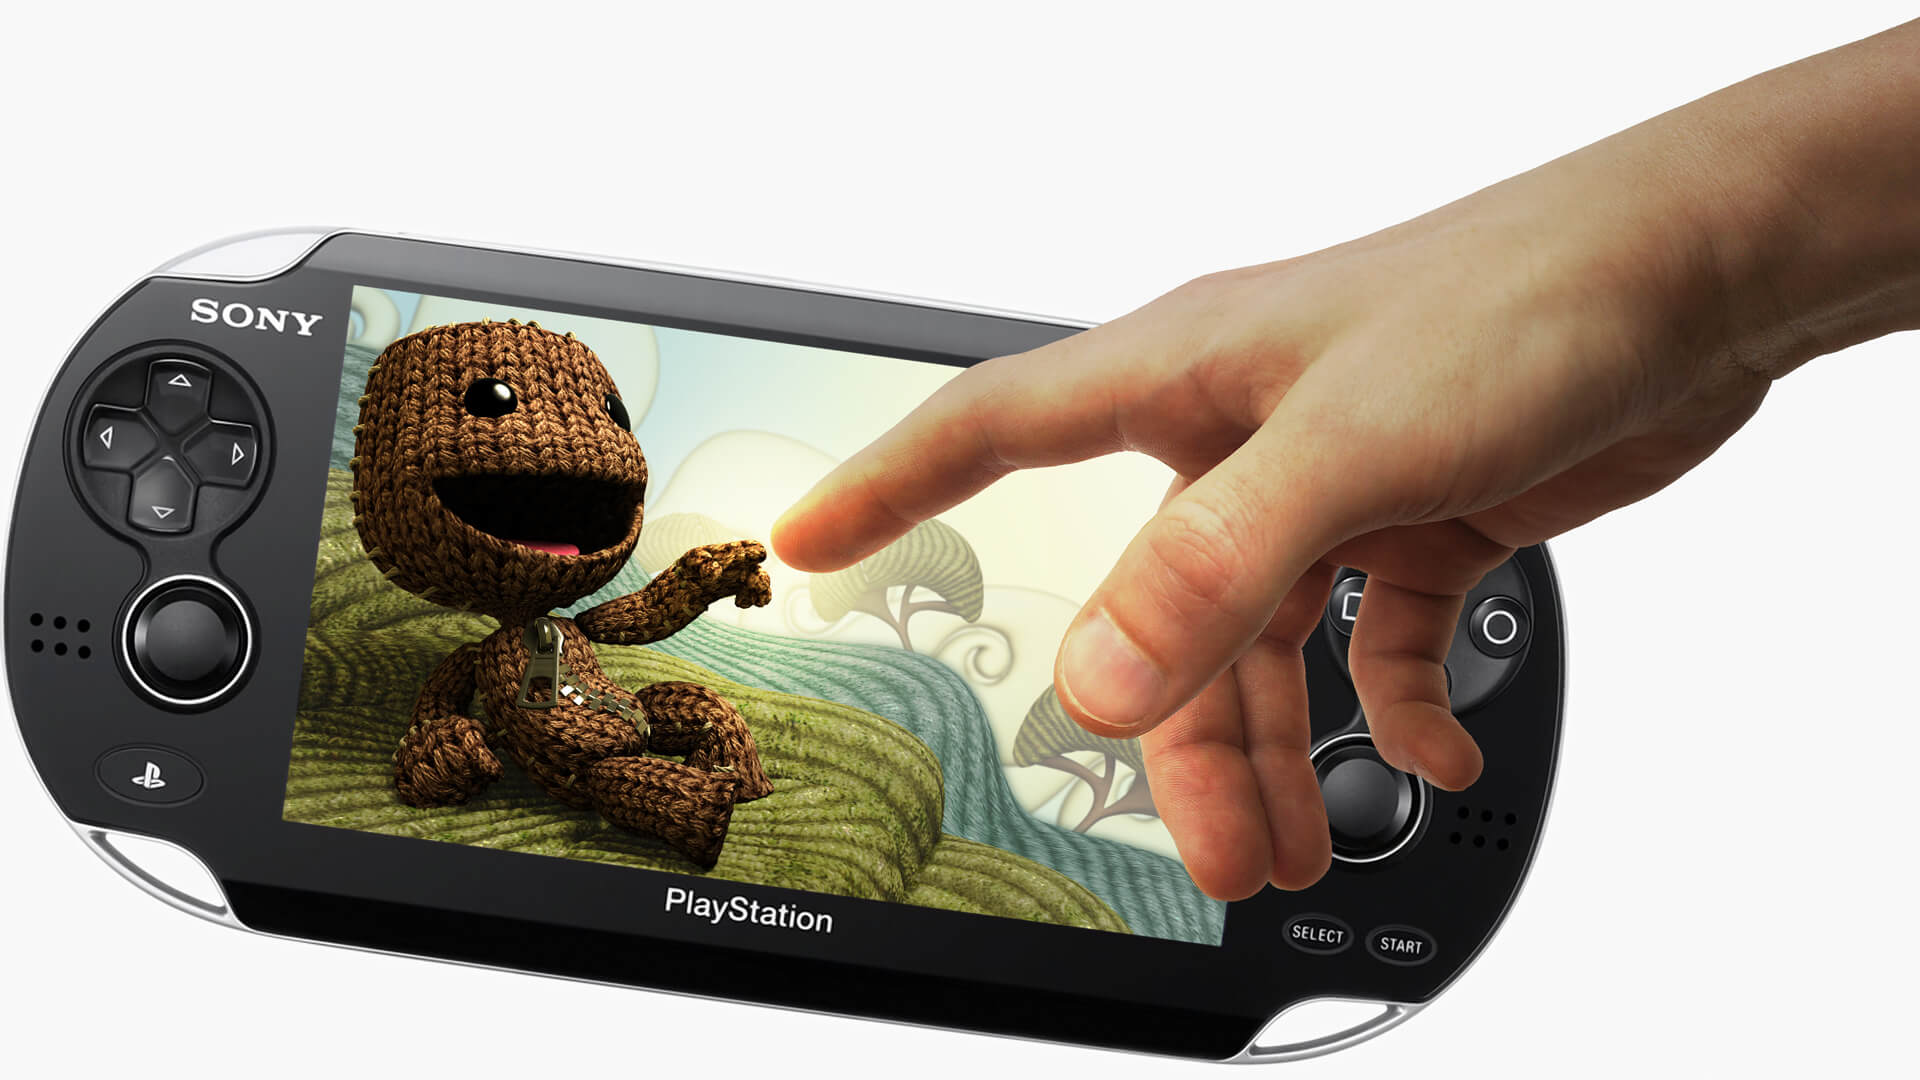 PlayStation Vita Developers are Forced to Cancel Their Titles